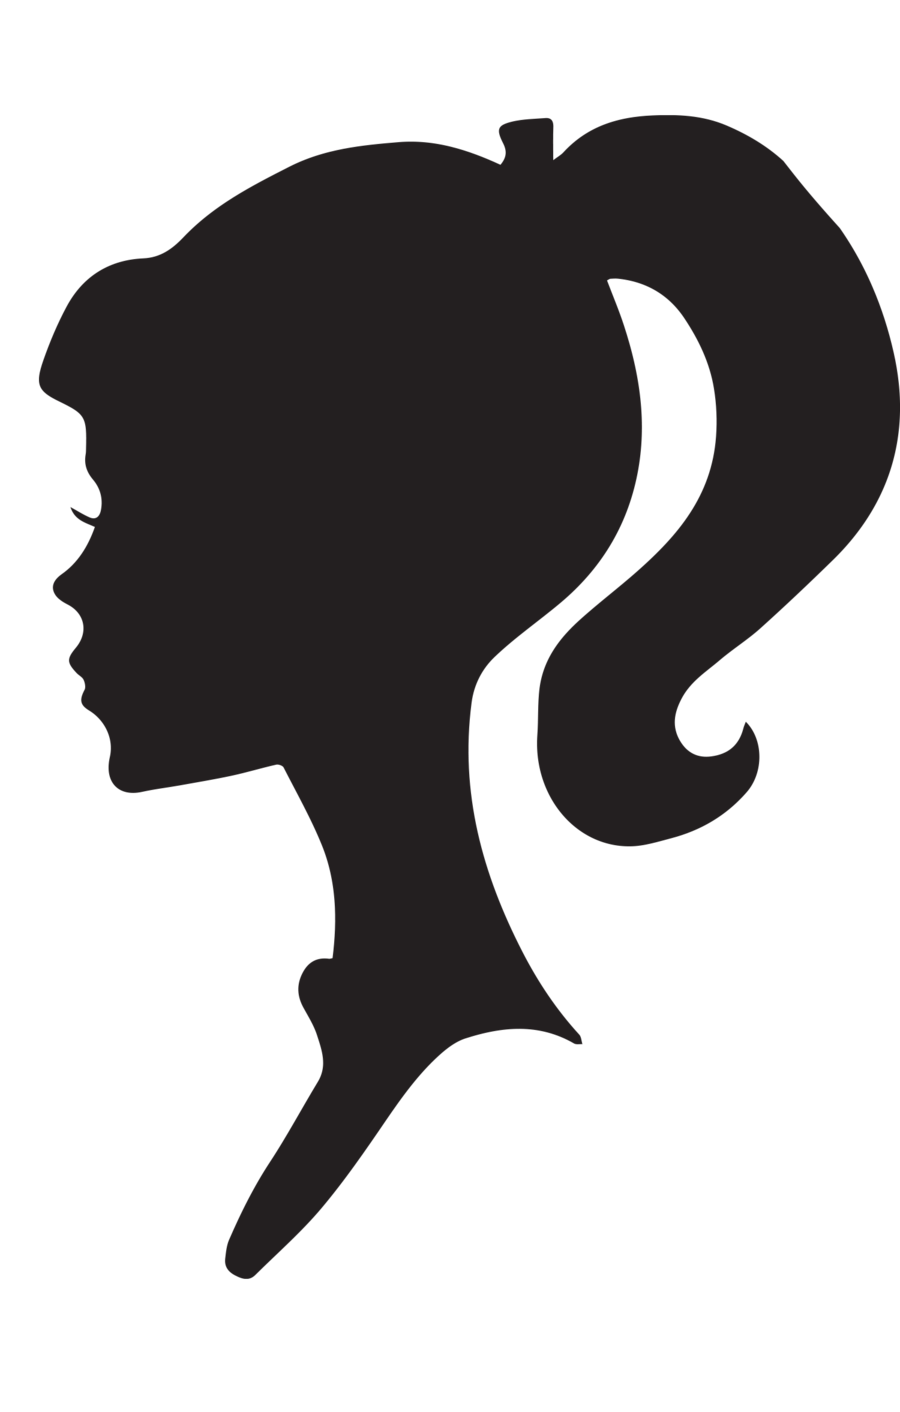 Silhouette Of Girl With Umbrella